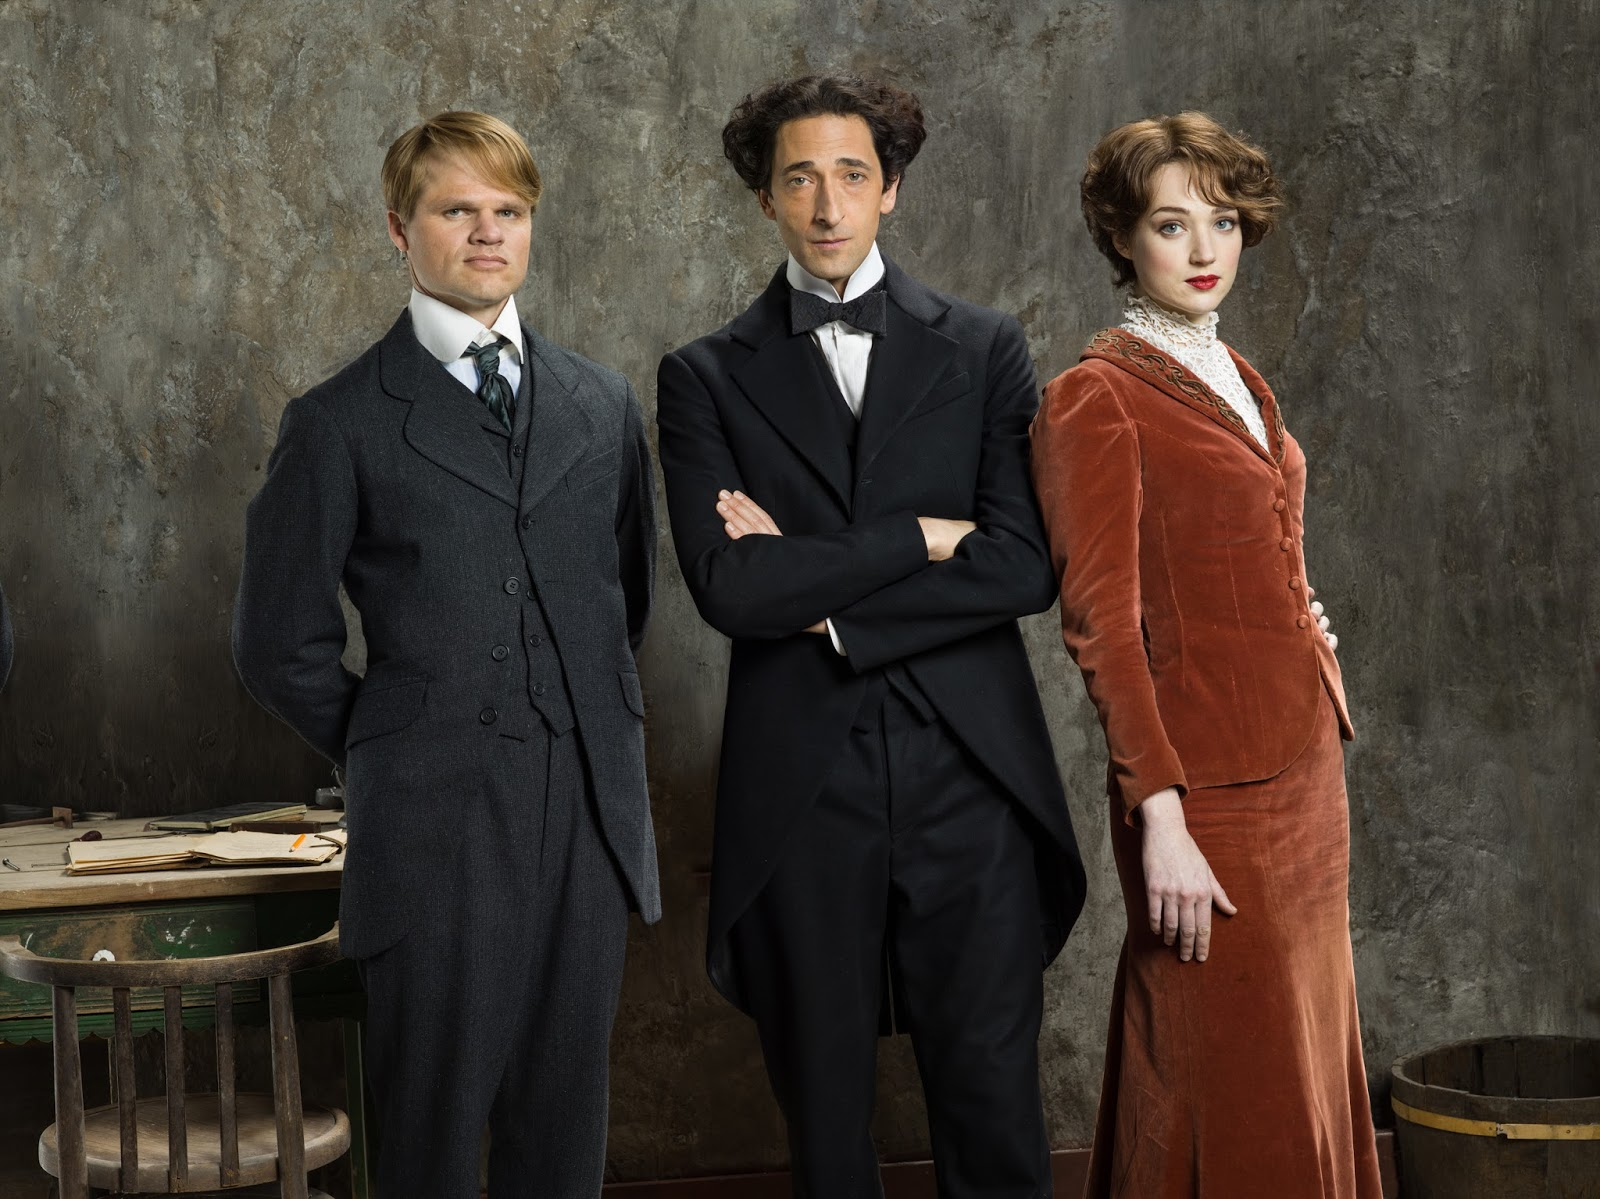 Evan Jones as Jim Collins, Adrien Brody as Houdini, Kristen Connolly as Bess Houdini in HOUDINI Series